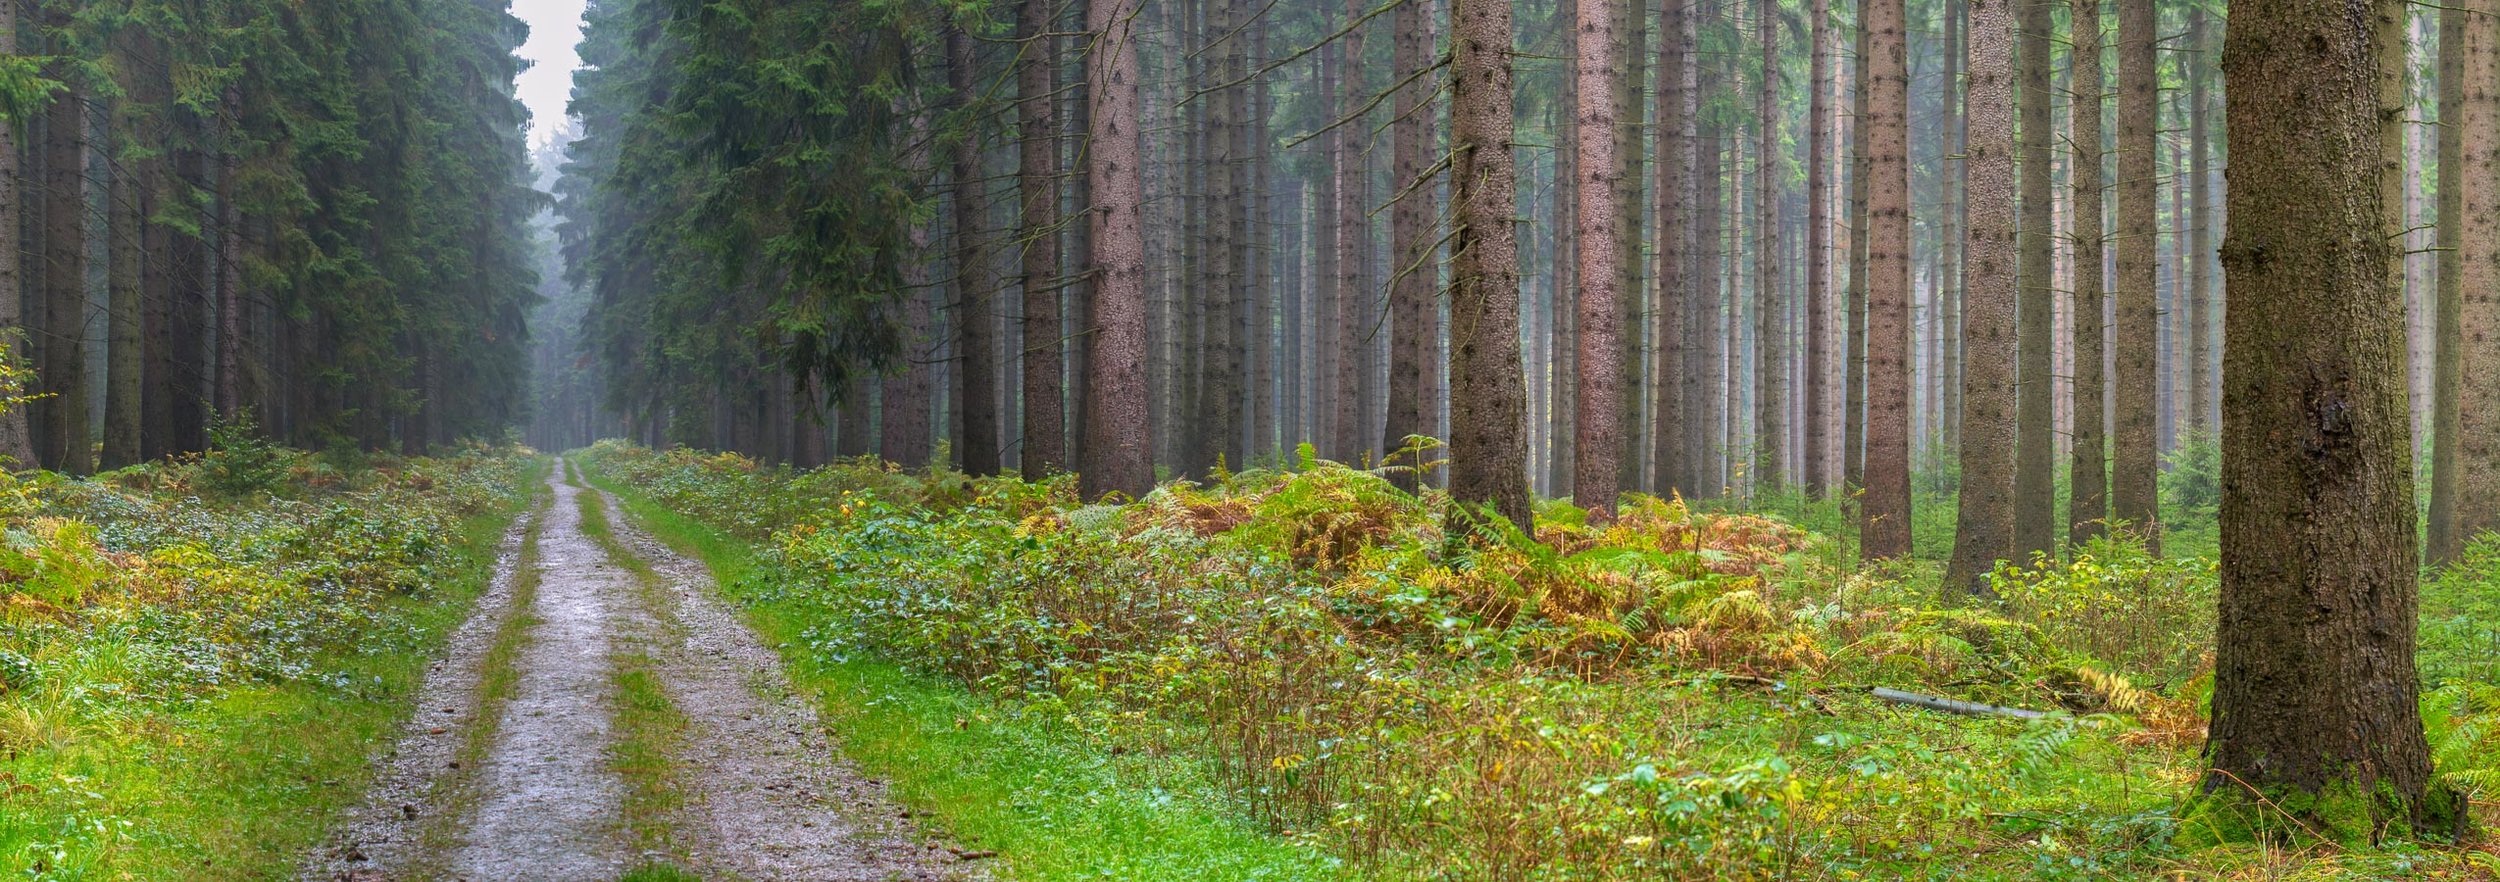 Woods are Lovely - Nikon 80D in 2006